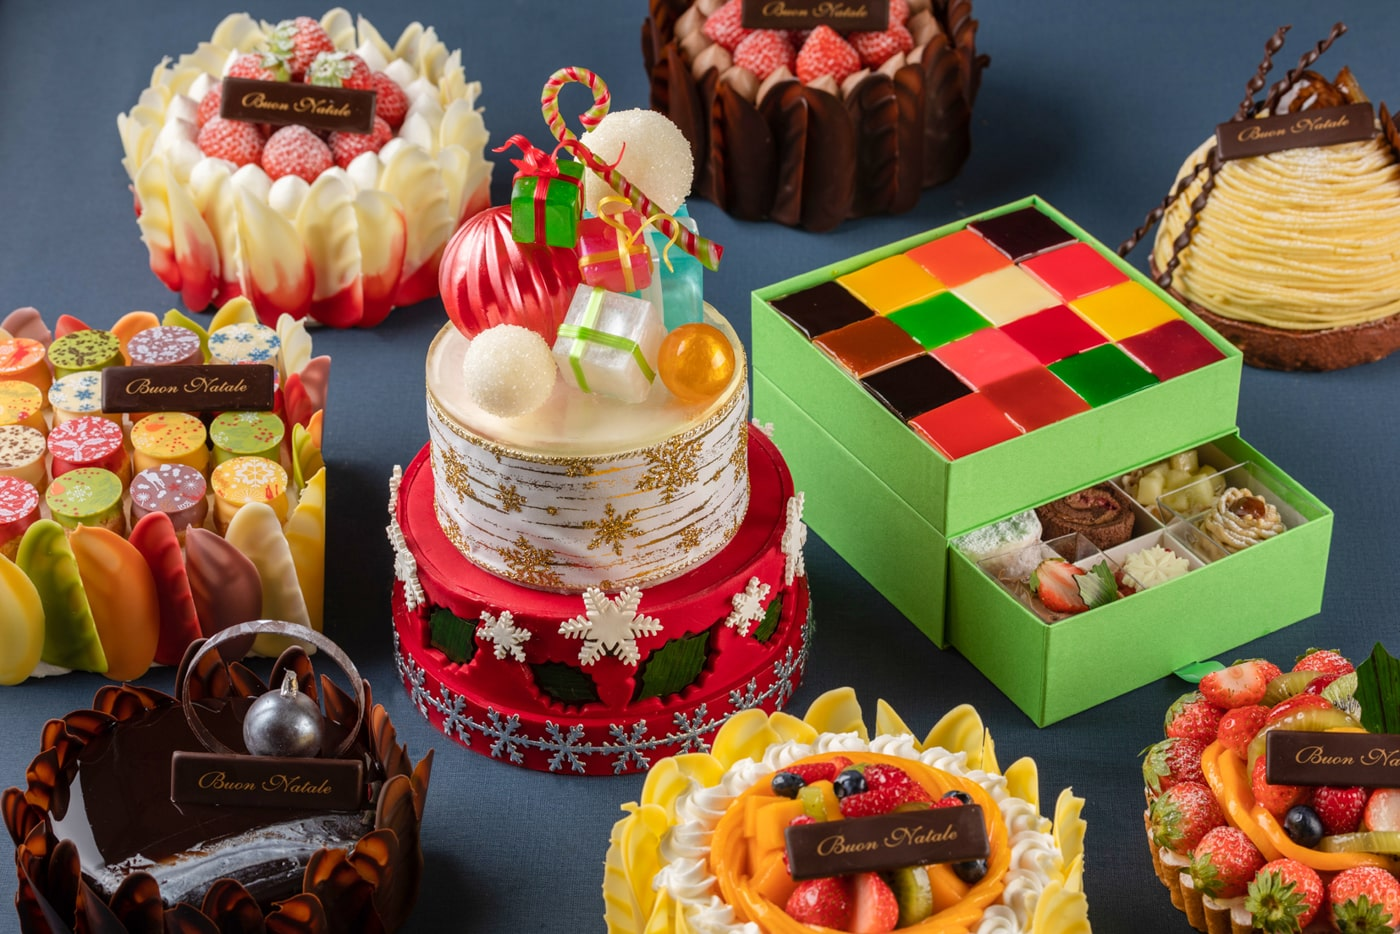 Christmas Cakes 2020 image2 Fiorentina Pastry Boutique Grand Hyatt Tokyo